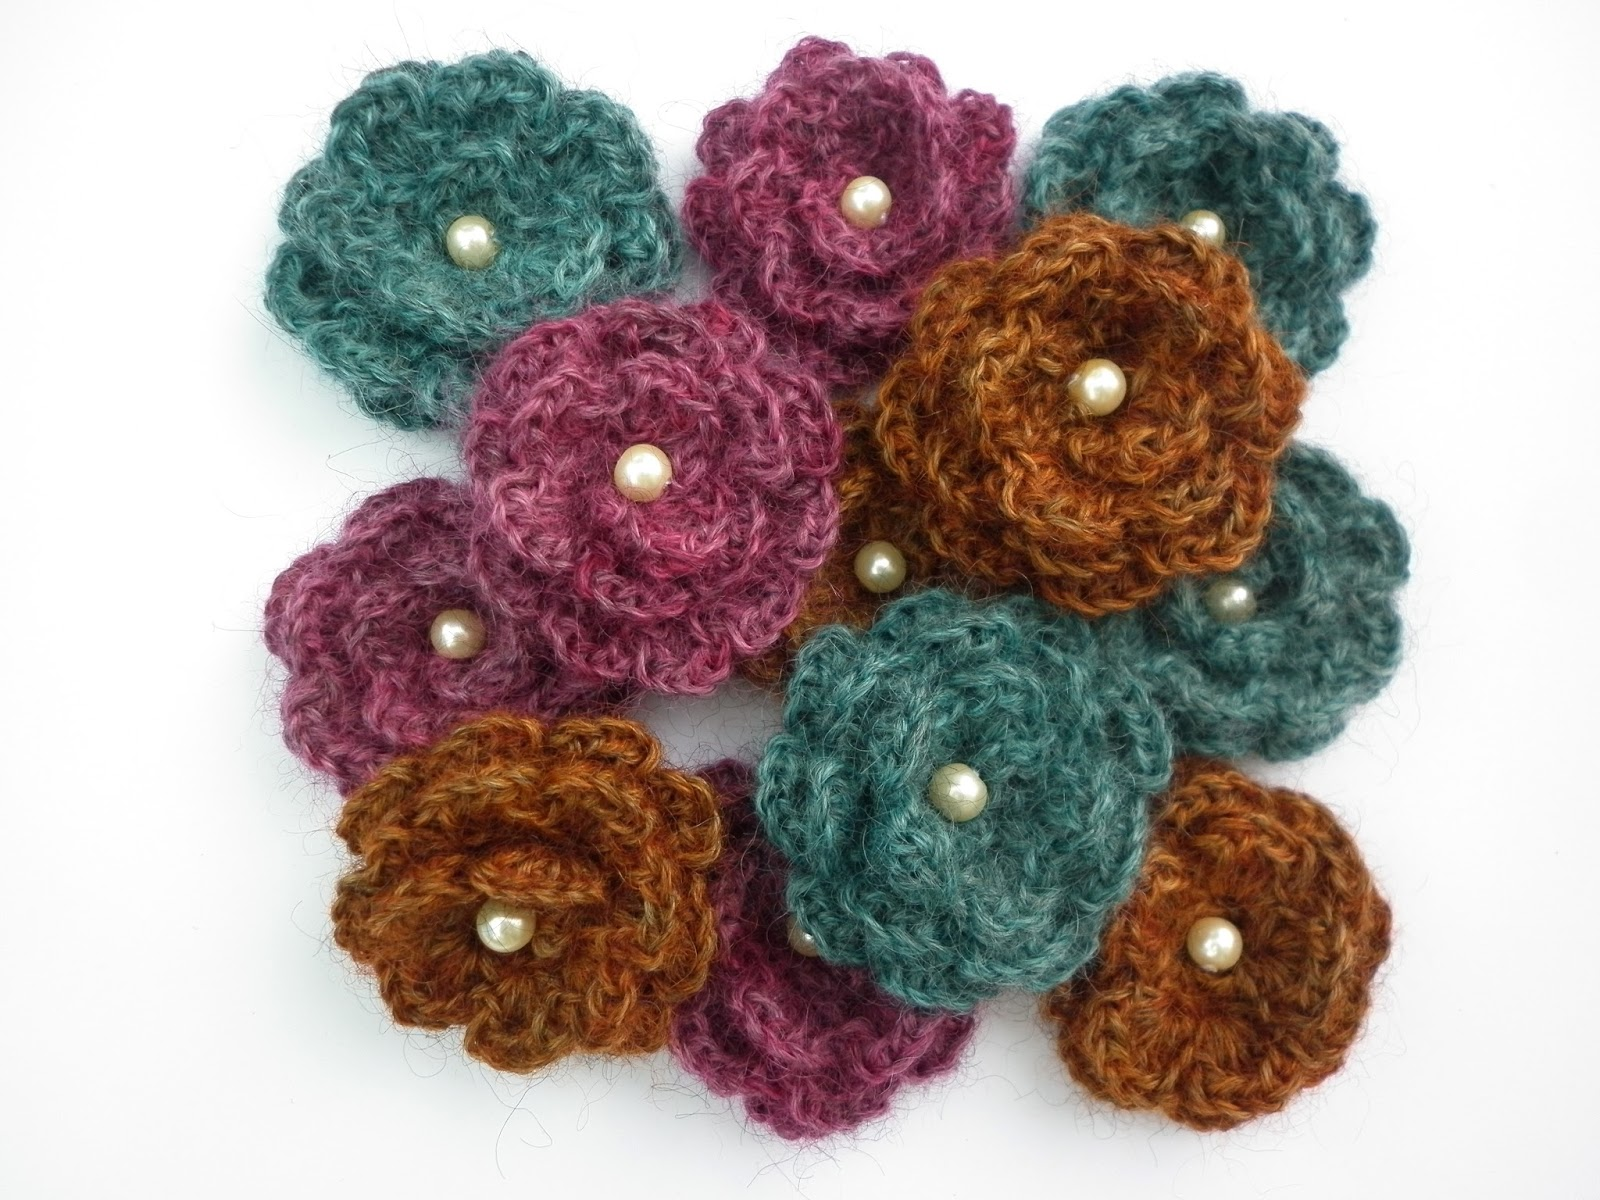 USE IT OR LOSE IT #3 - YARNDALE FLOWER BROOCH - A FREE CROCHET PATTERN